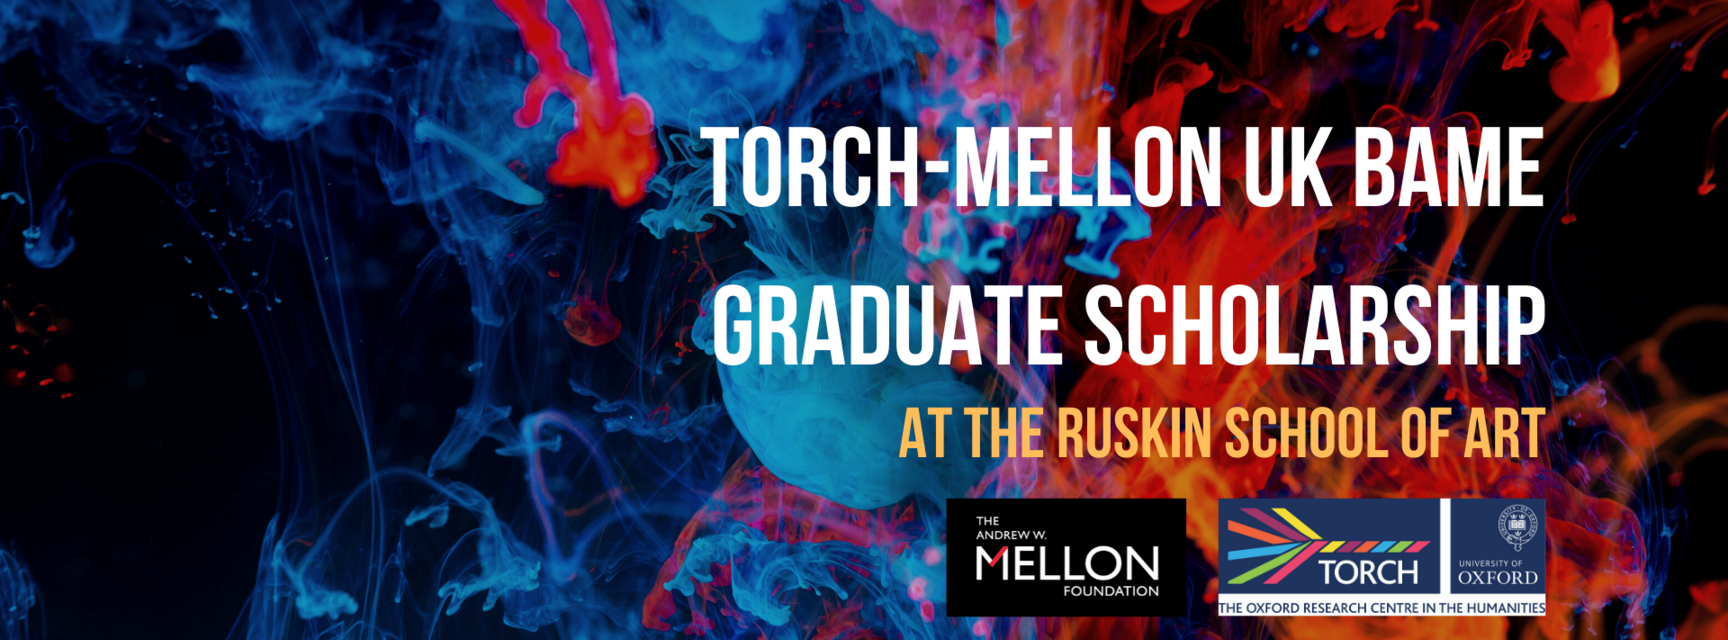 banner torch mellon uk bame graduate scholarship